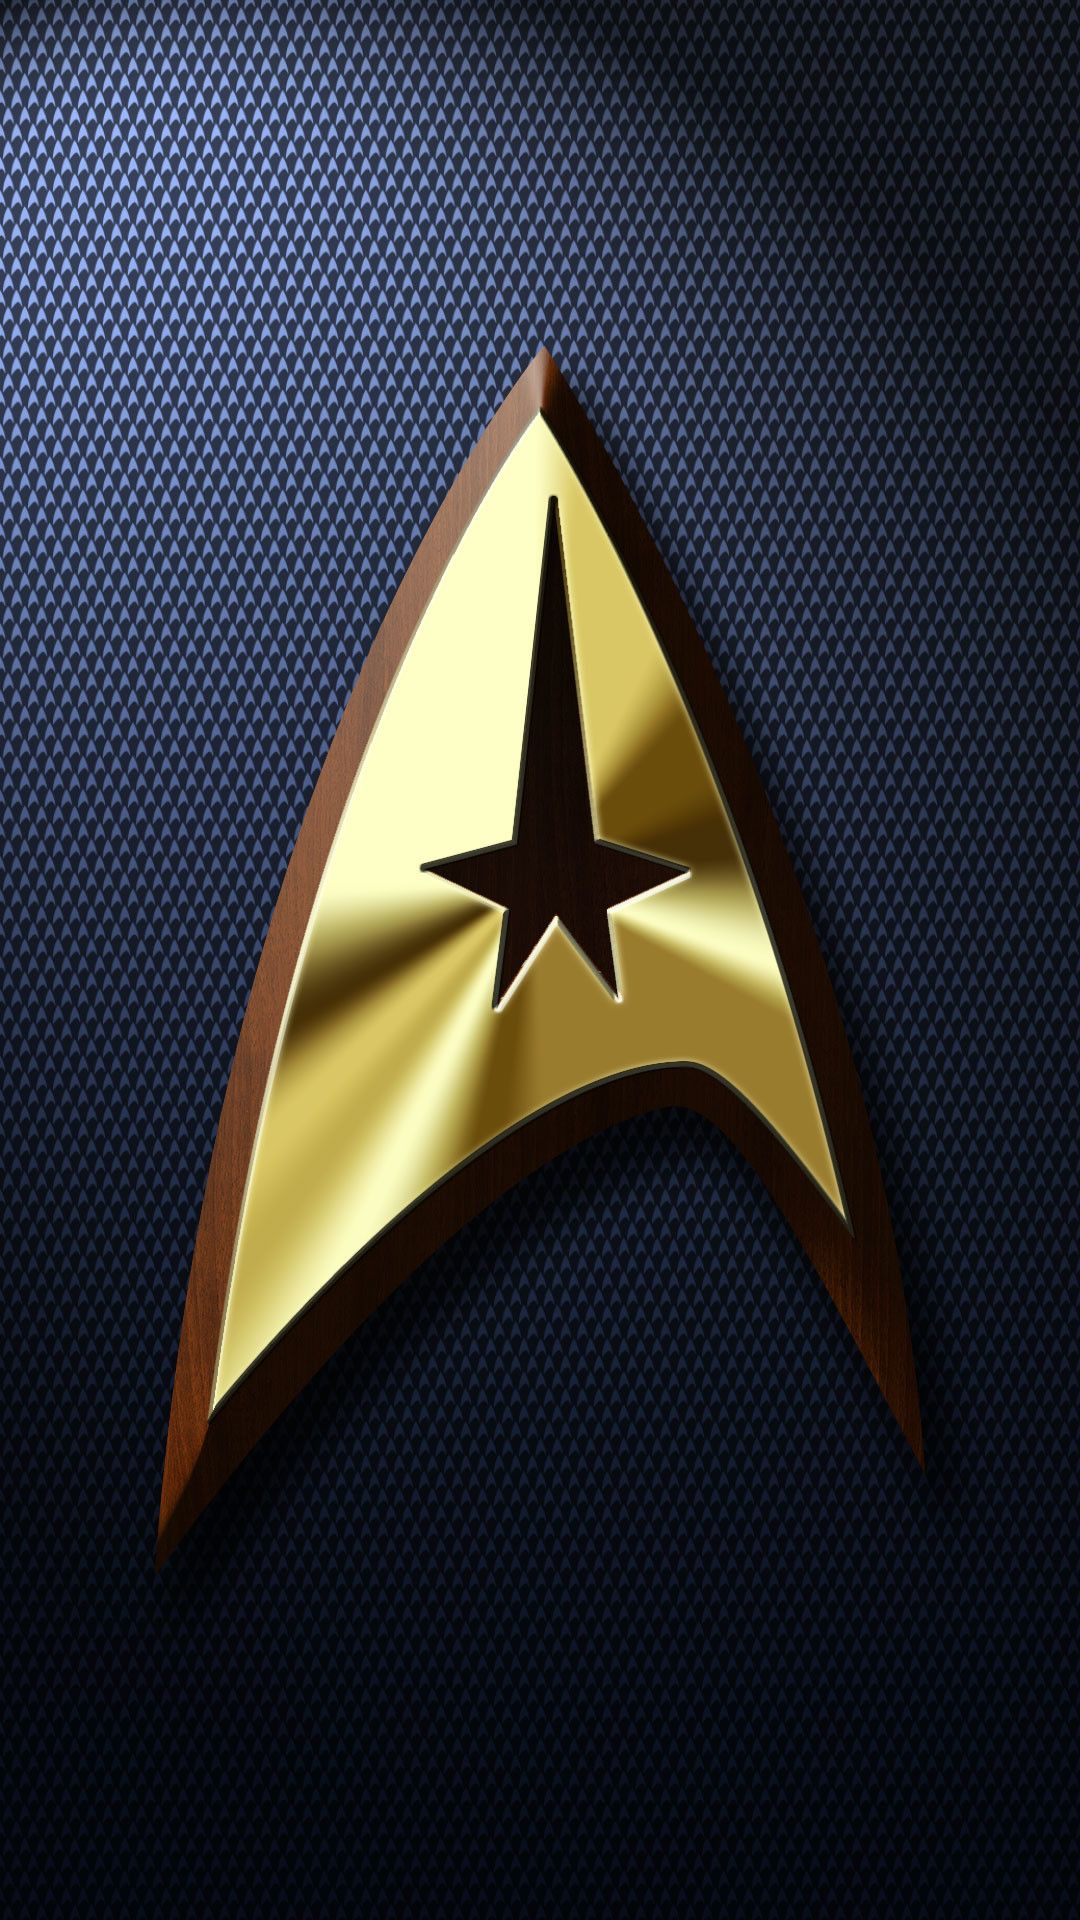 Star Trek Phone Wallpapers Top Free Star Trek Phone Backgrounds